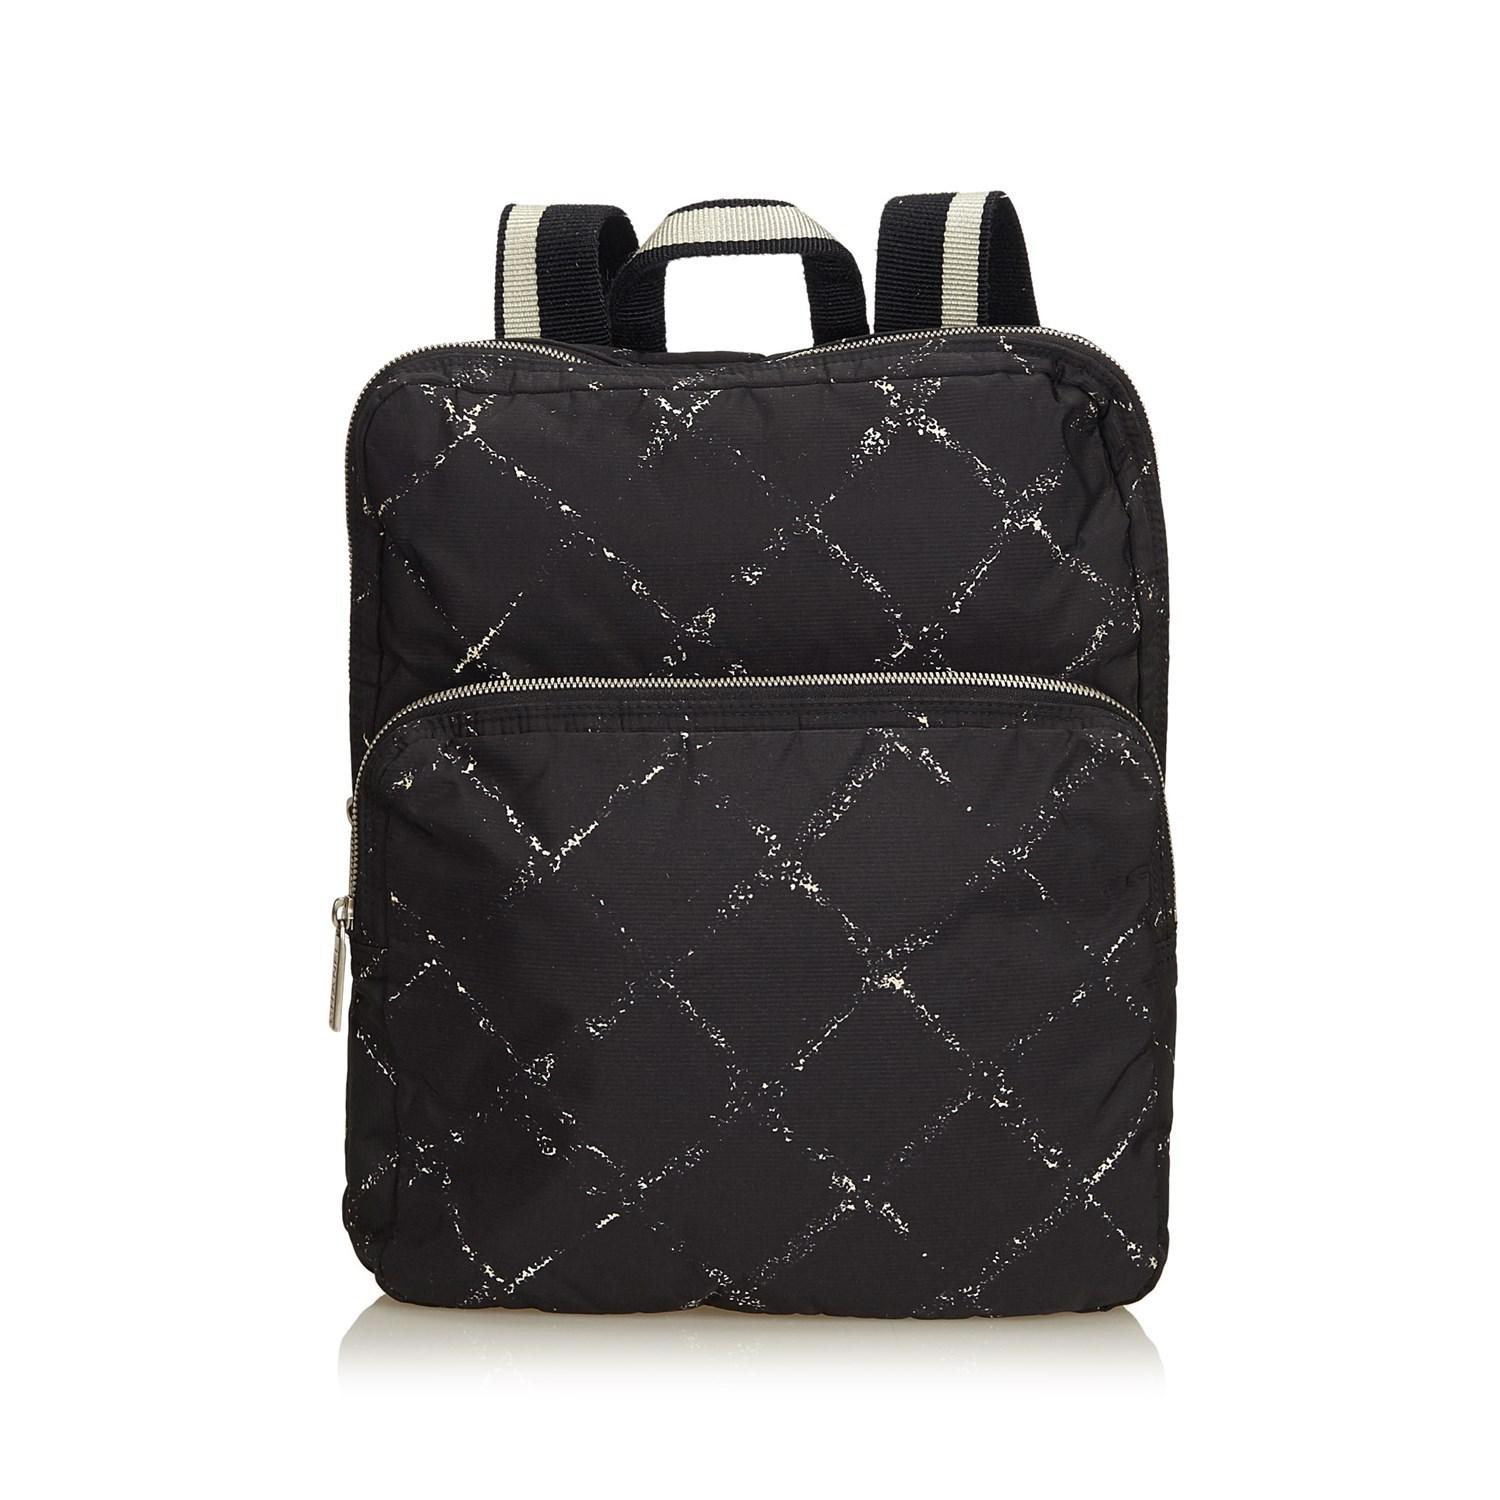 Lyst - Chanel Old Travel Line Backpack in Black 4395175457150